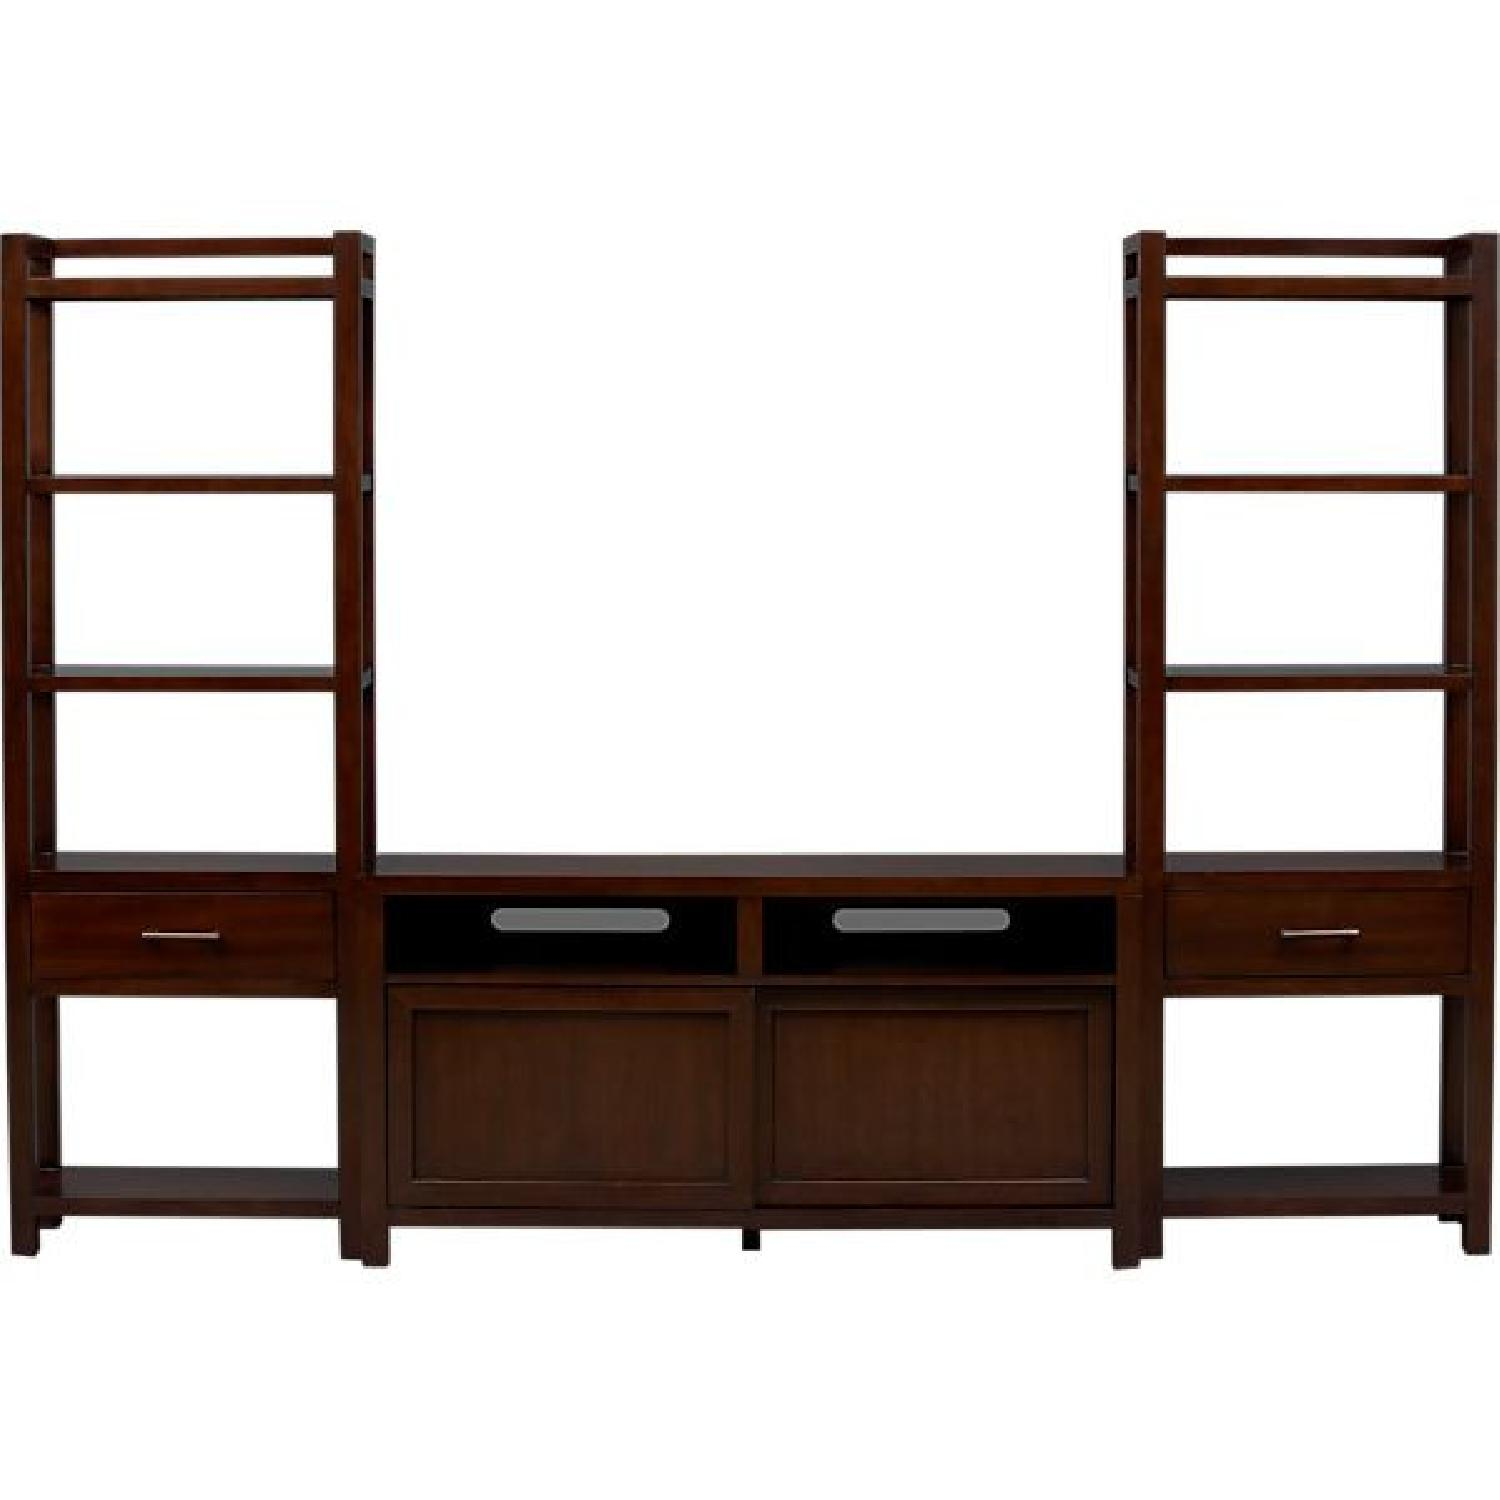 Crate & Barrel Media Console w/ 2 Media Towers - image-0